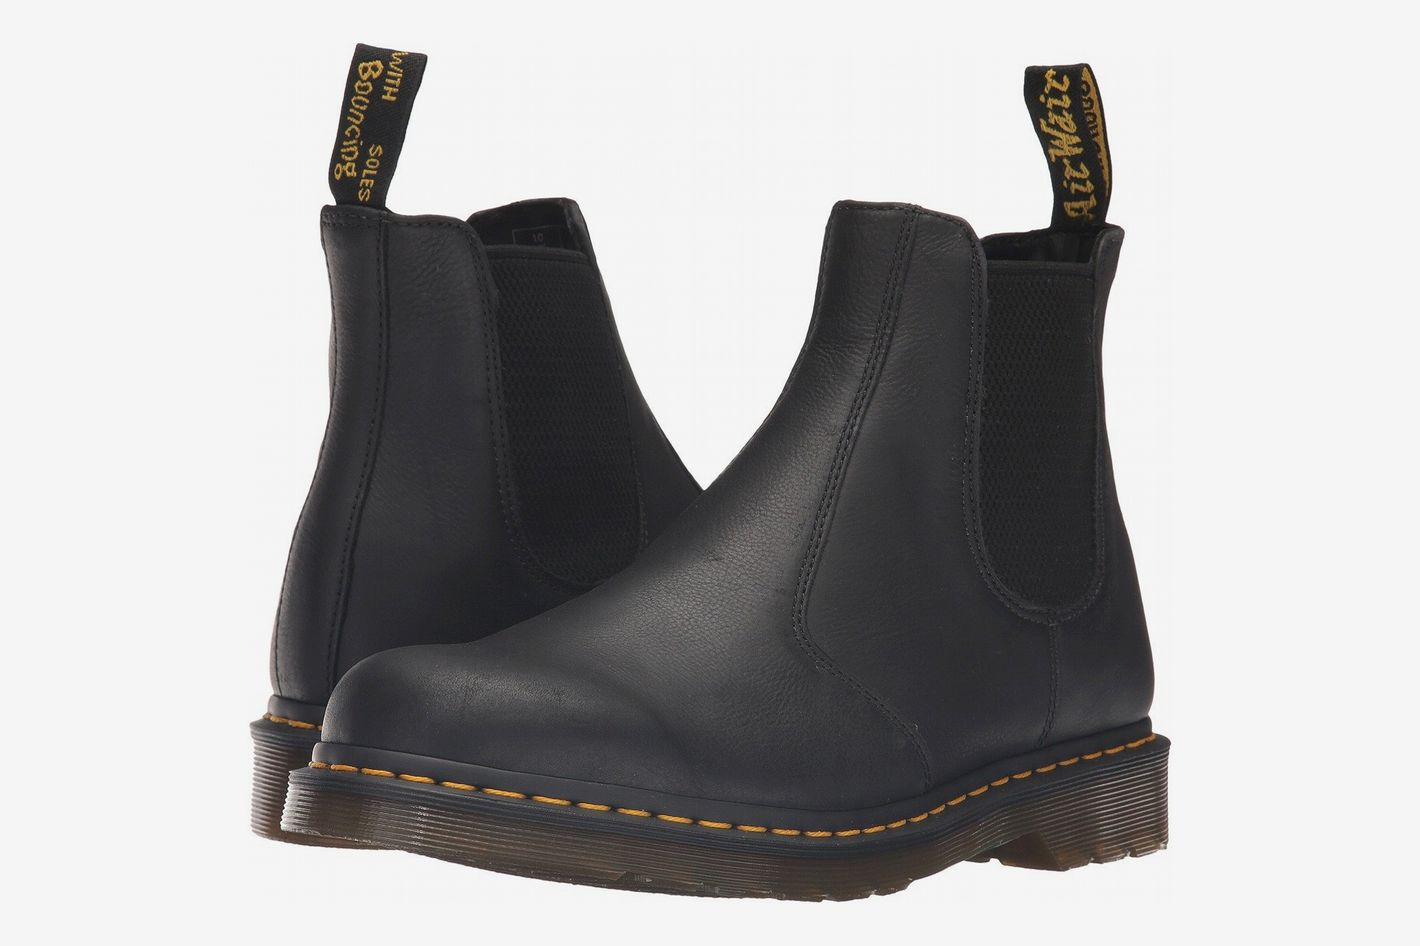 91df9f614df1 31 Best Chelsea Boots 2018